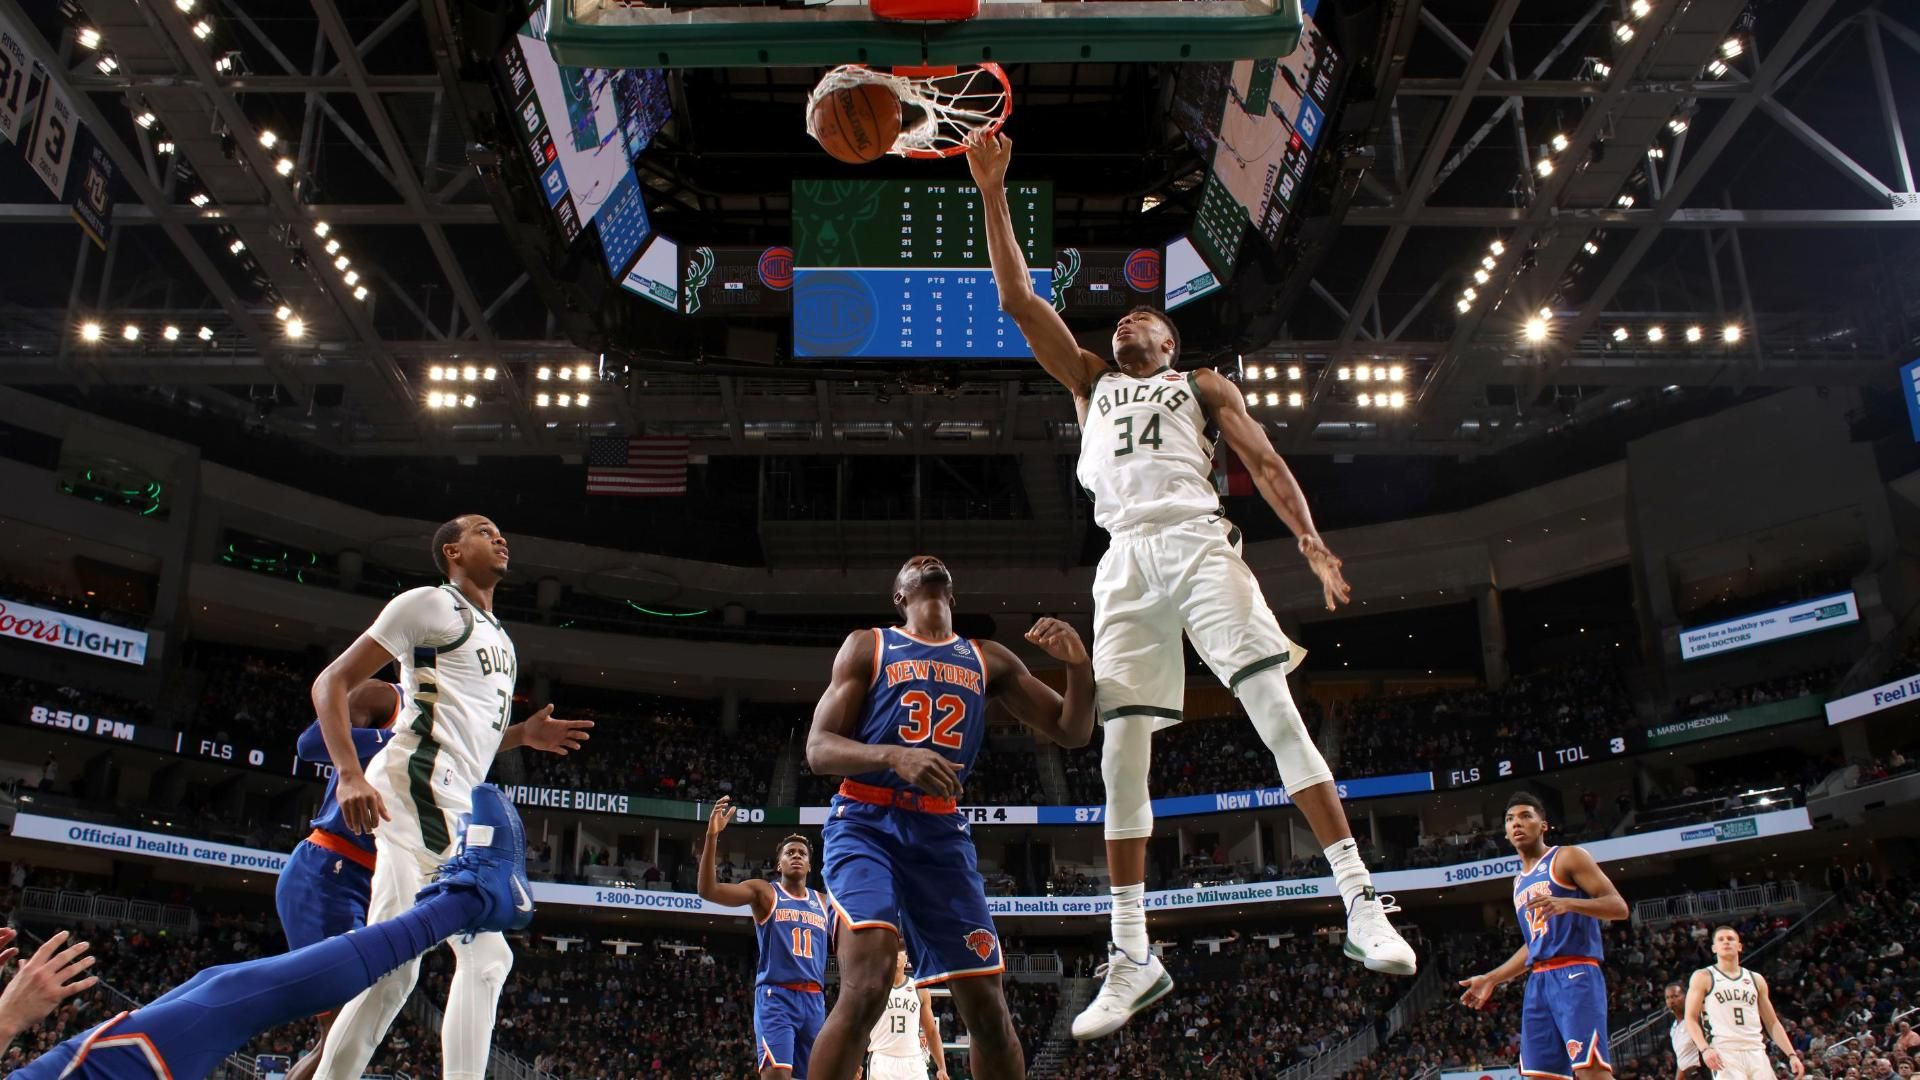 https://secure.espncdn.com/combiner/i?img=/media/motion/2018/1023/dm_181022_nba_bucks_greek_freak_dunks_fourth_quart22/dm_181022_nba_bucks_greek_freak_dunks_fourth_quart22.jpg